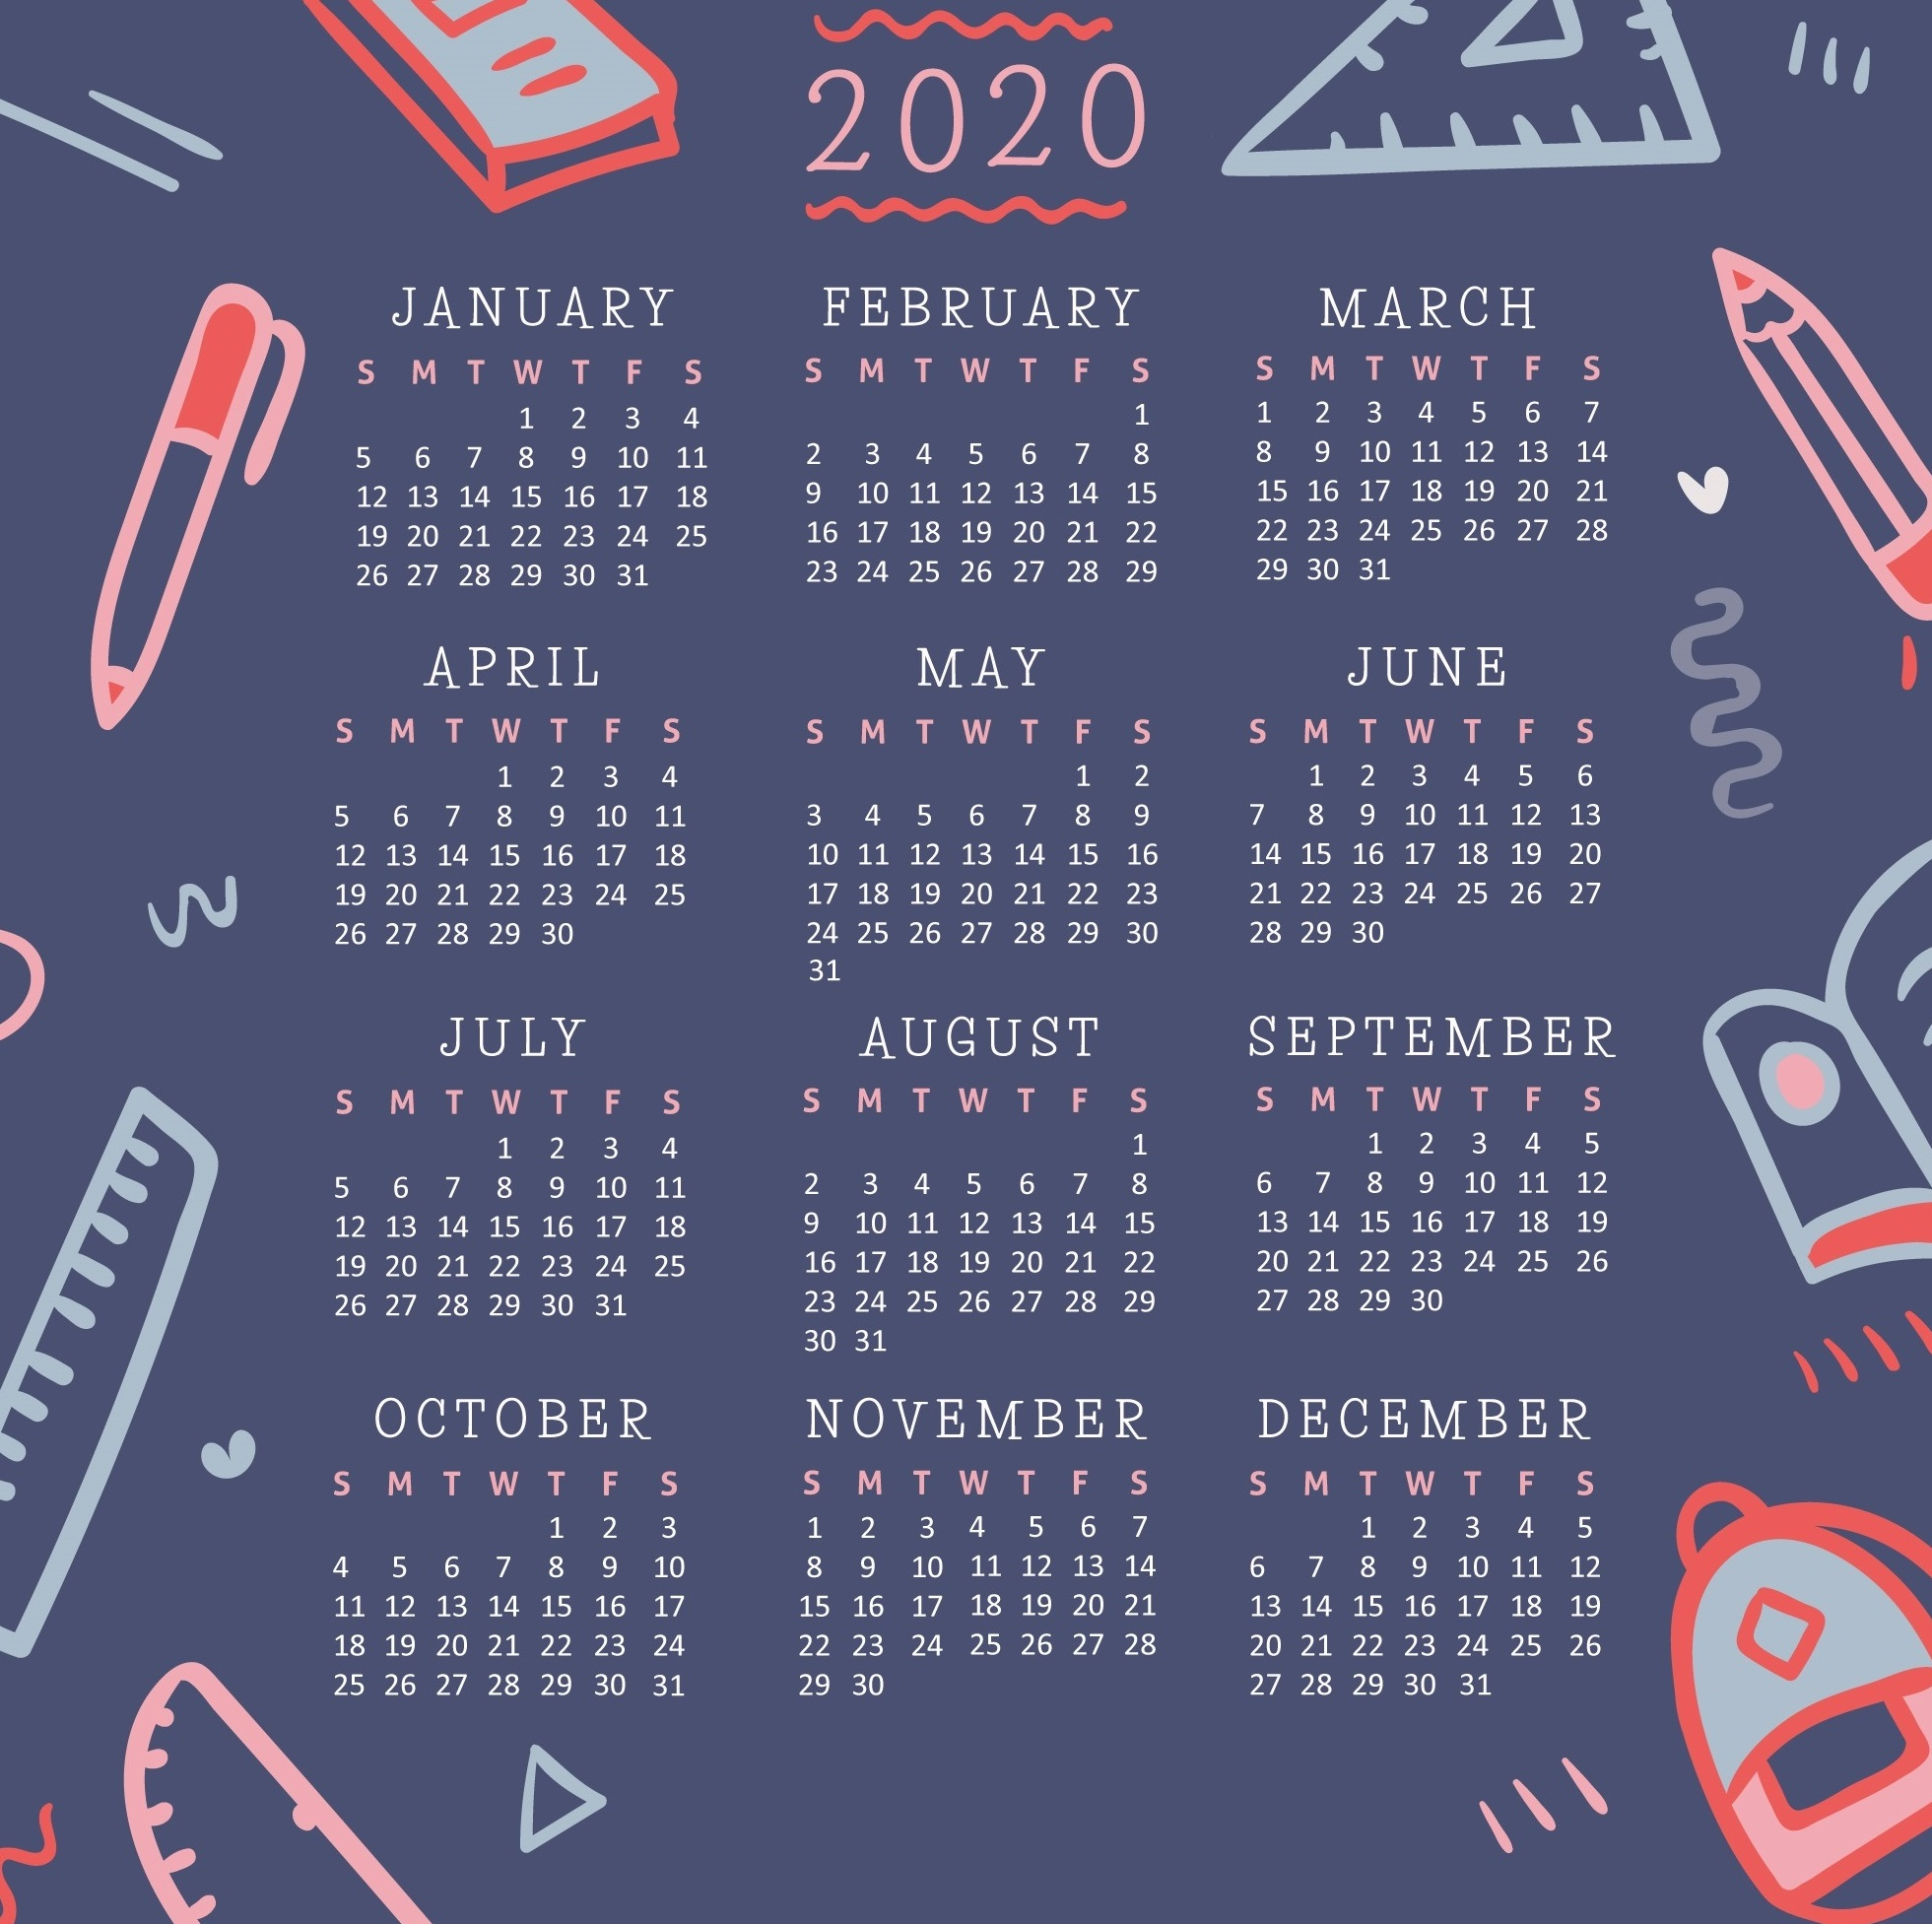 53] 2020 Calendar Phone Wallpapers on WallpaperSafari 1961x1953